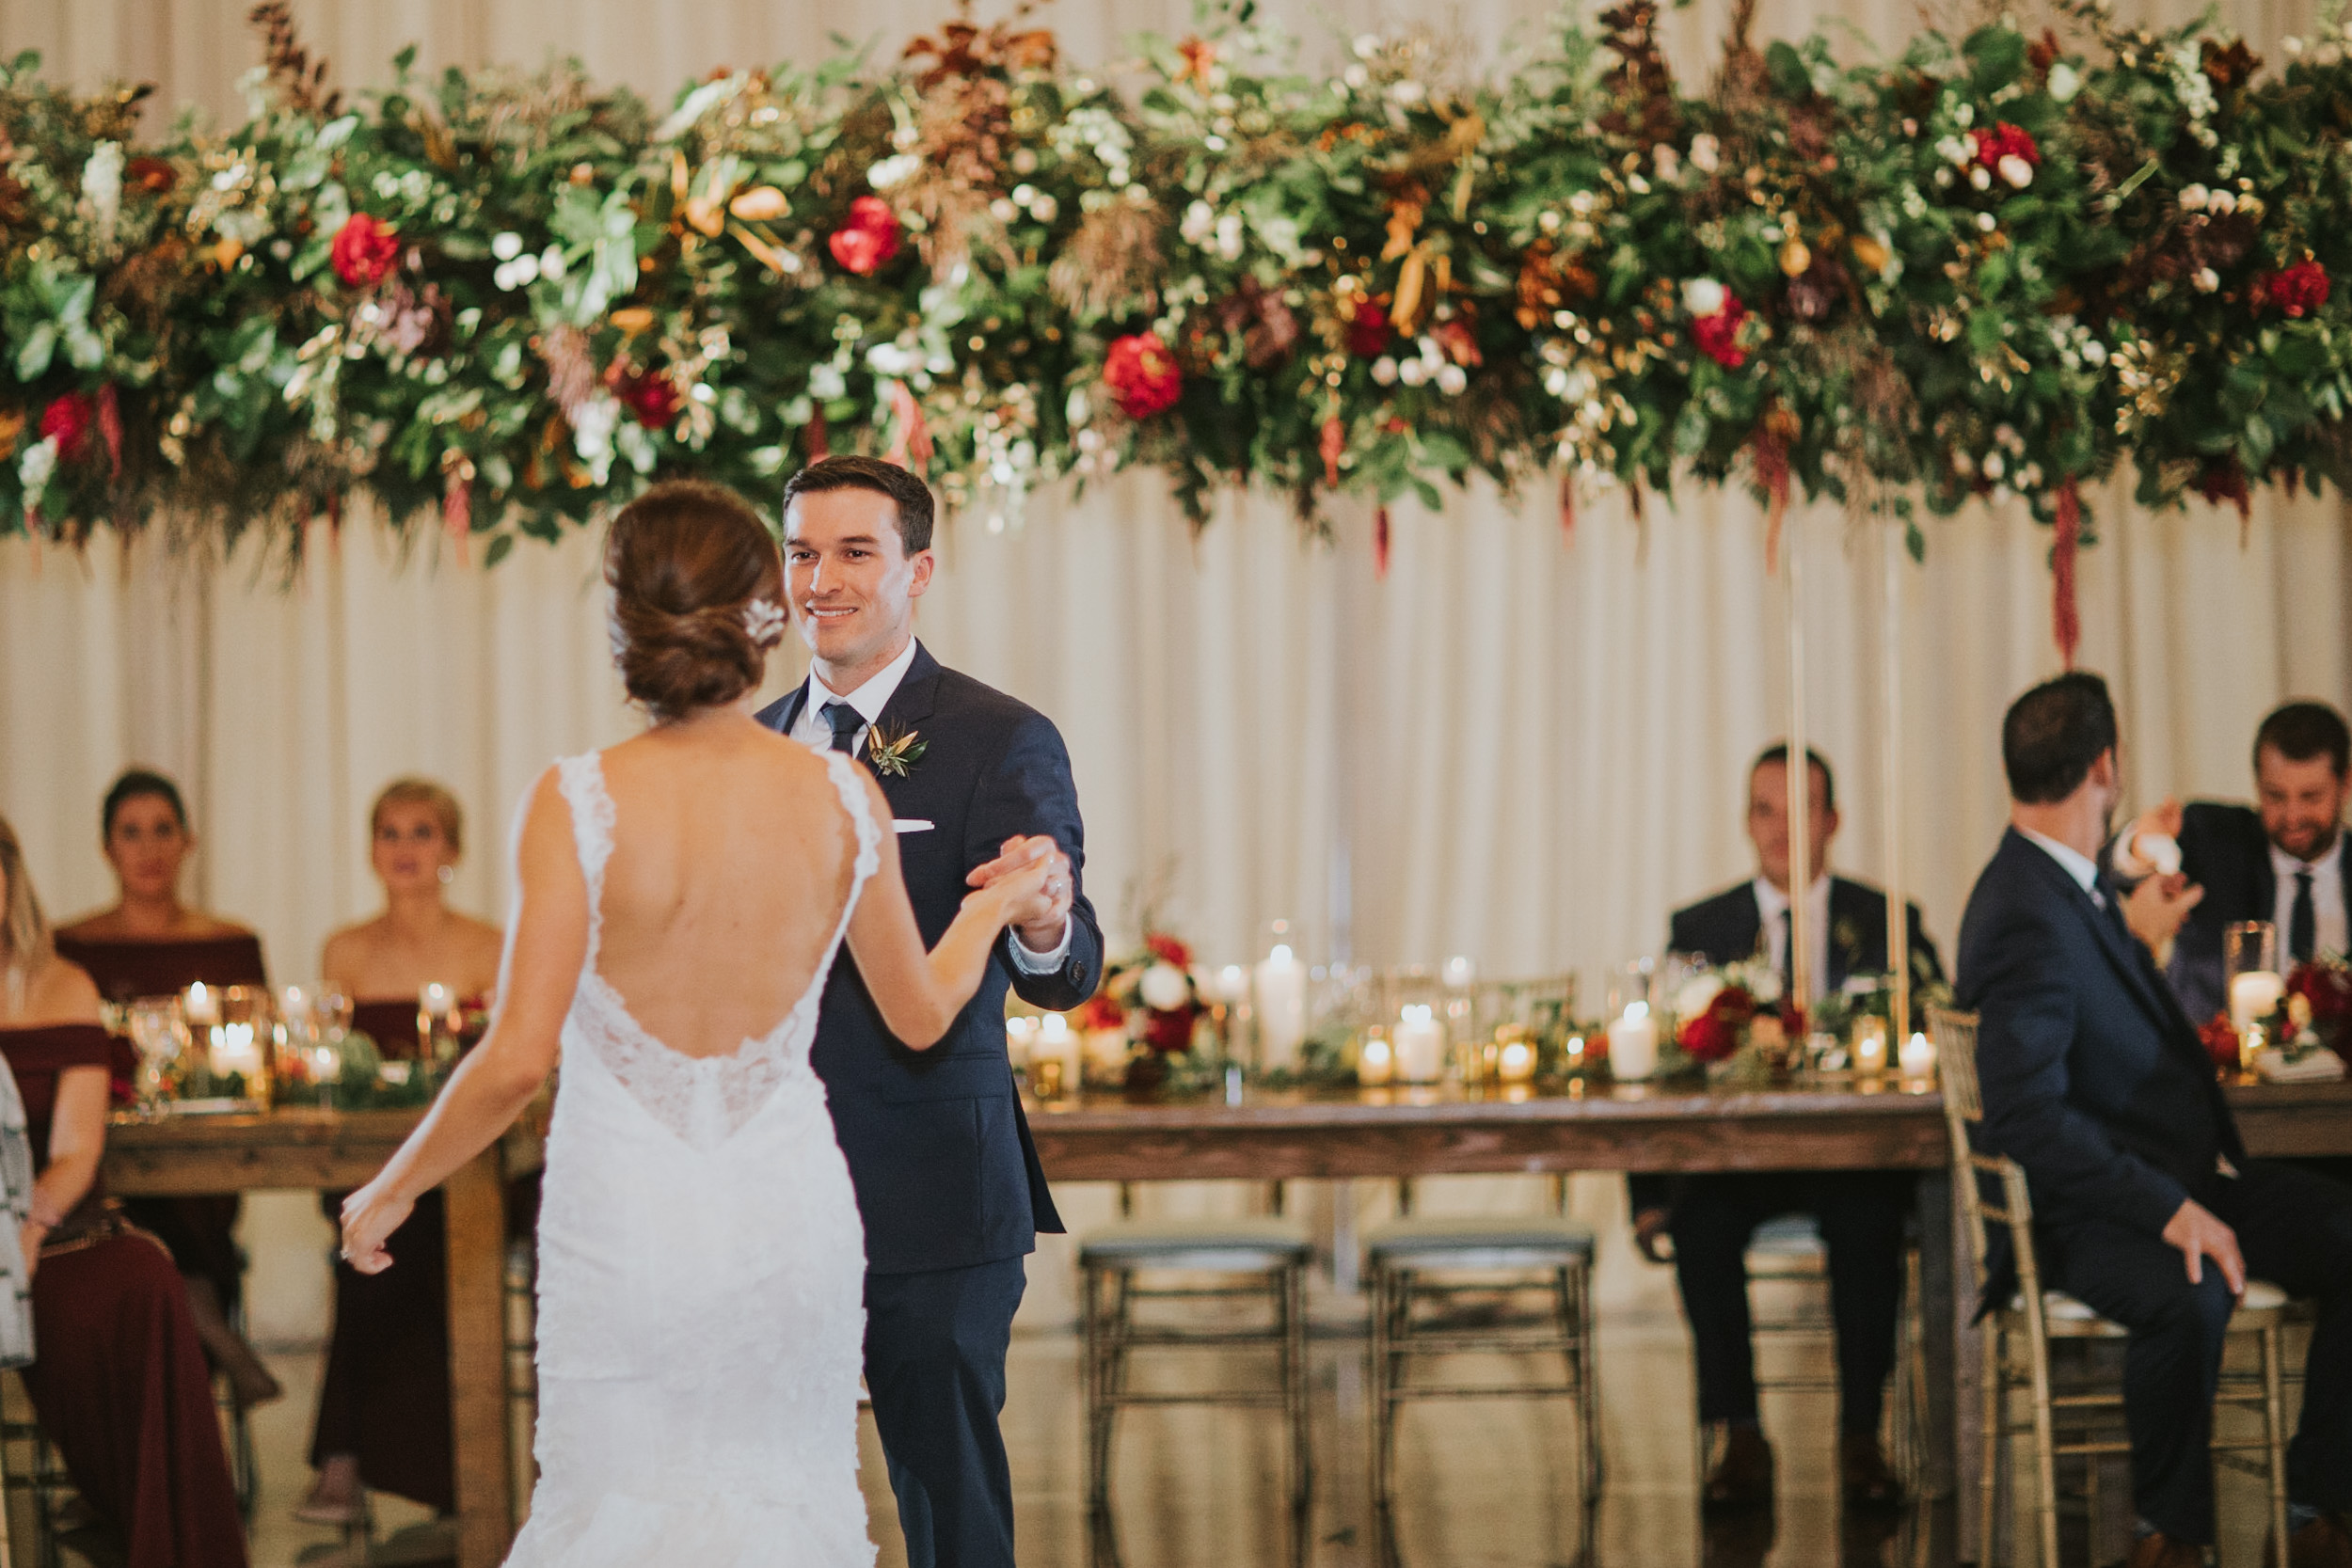 HaroldWashingtonLibraryWedding_Polly C Photography 1704193842.jpg